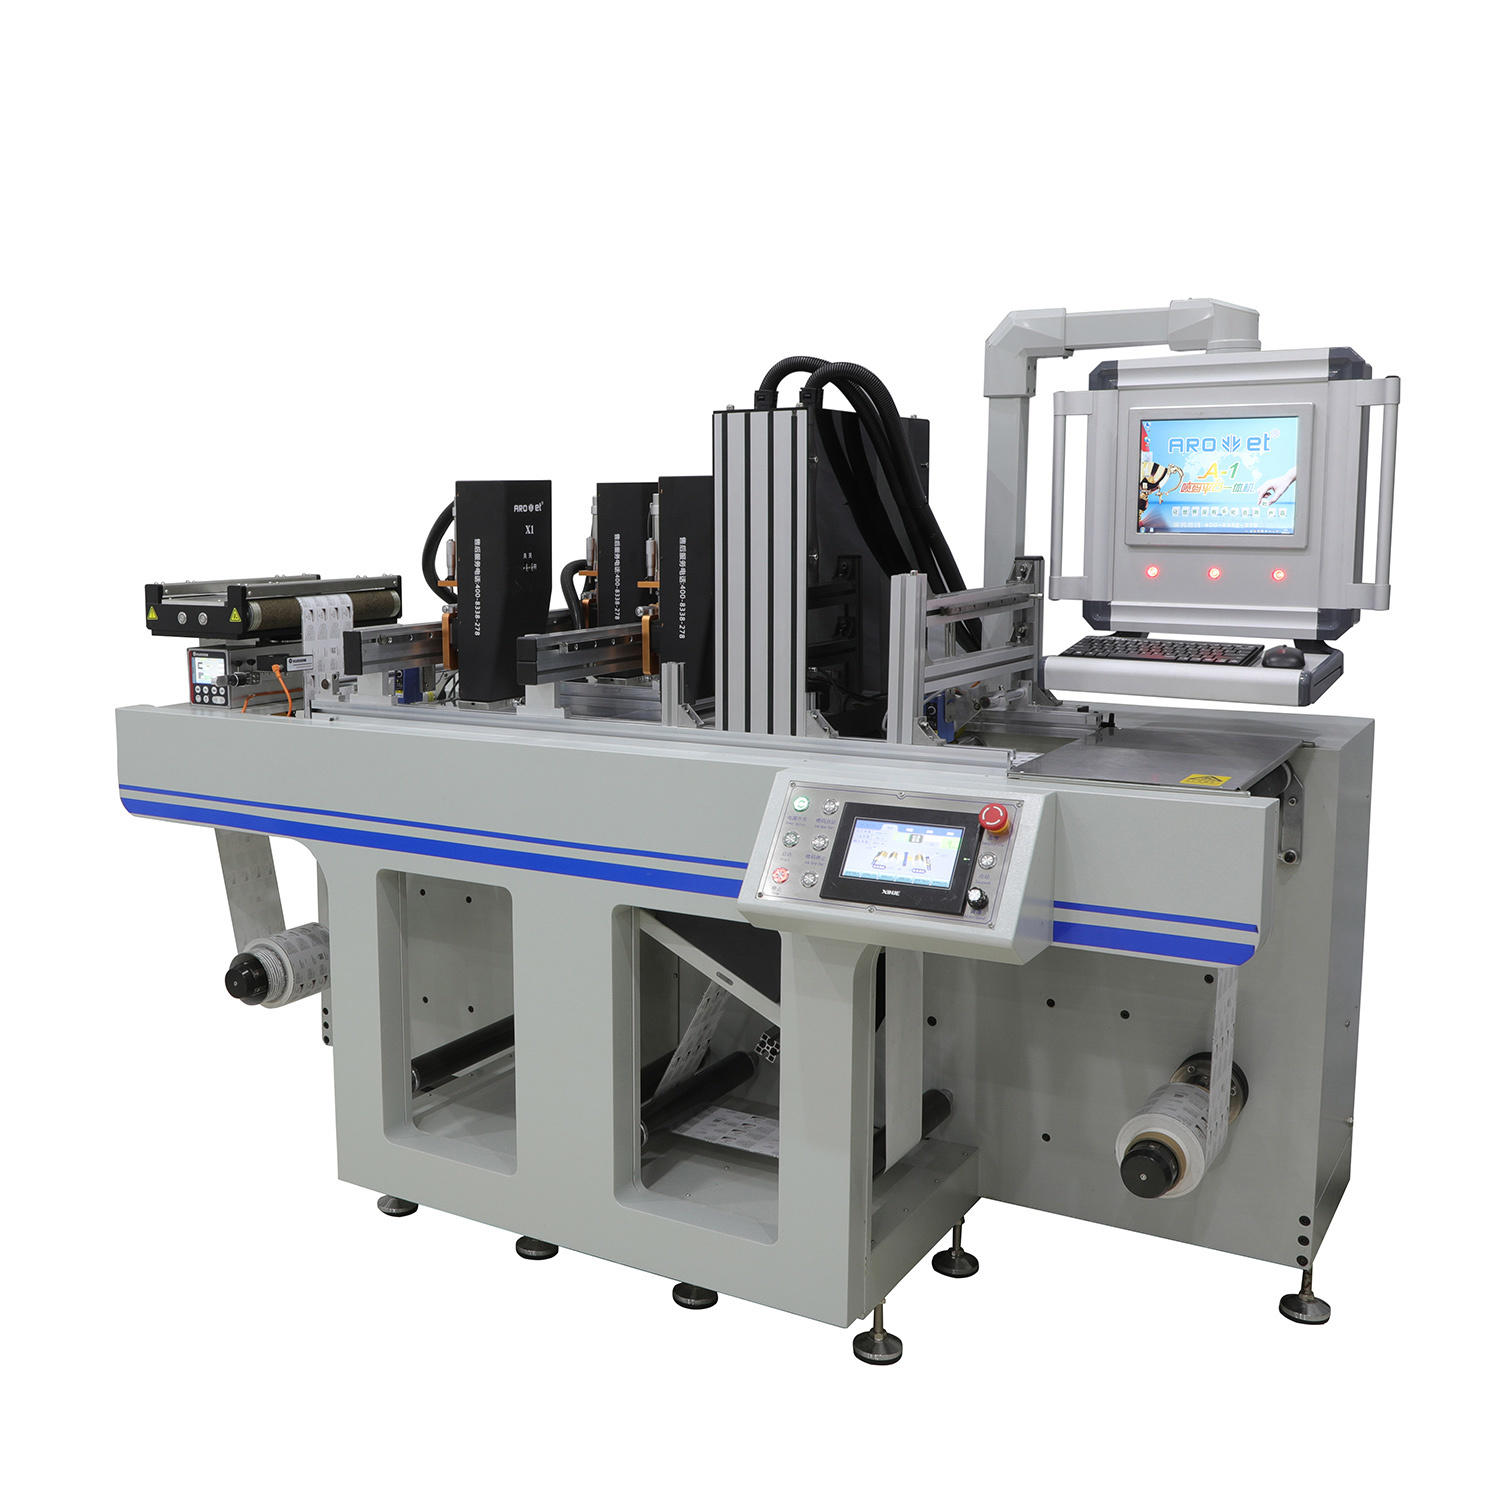 UV Dod Single-Pass Label Web Inkjet Printer with Invisiable Ink